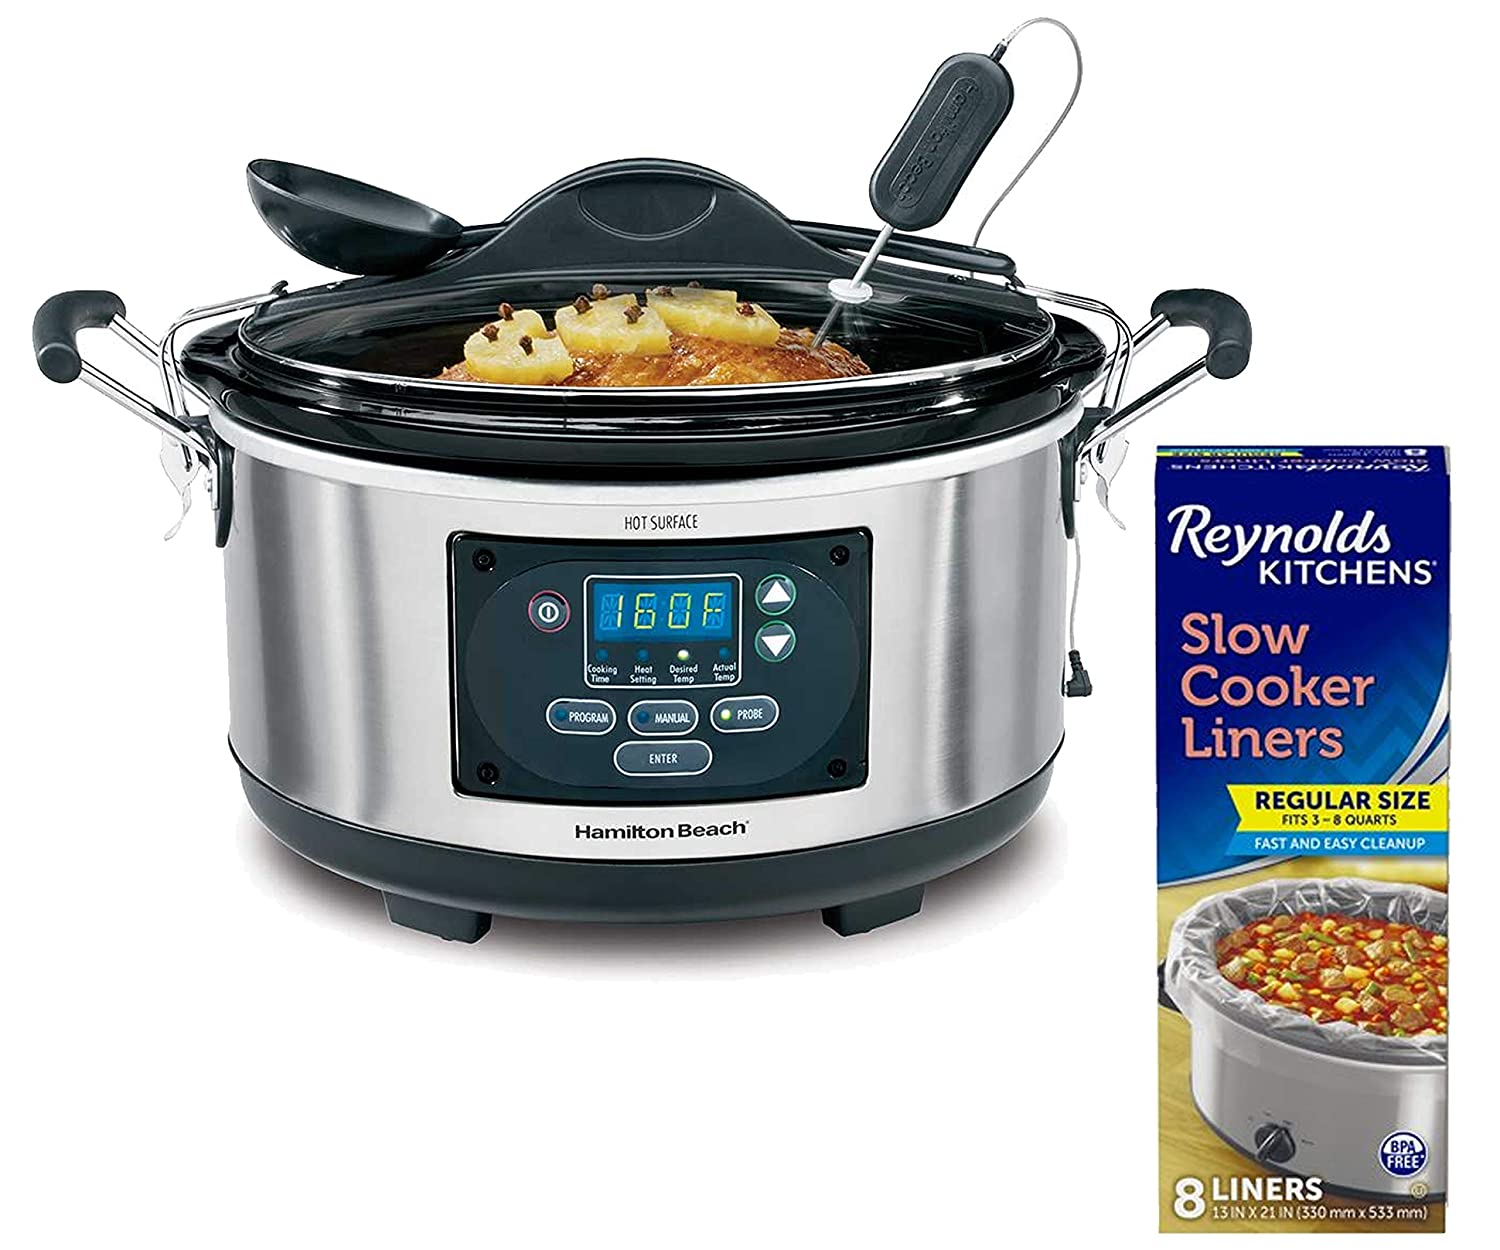 "Hamilton Beach 6 Quart Portable Set 'n Forget Probe Slow Cooker bundle with Reynolds Kitchens 8 Count 13"" x 21"" Premium Slow Cooker Liners"